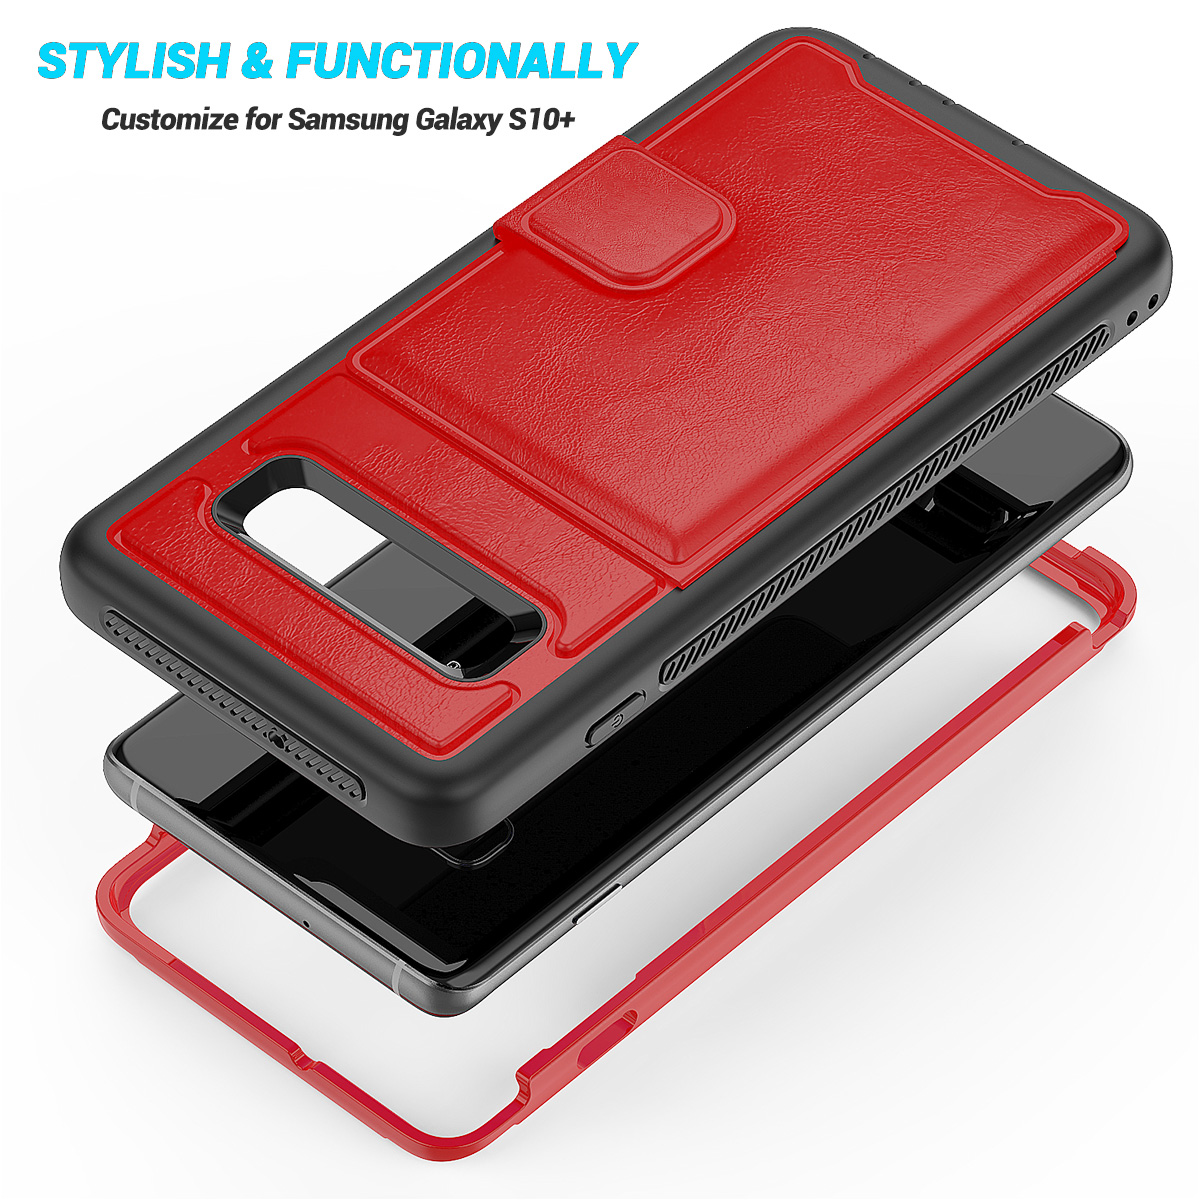 PU-Leather-Credit-Card-Holder-Phone-Case-For-Samsung-Galaxy-S10-Plus-S10e-2019 thumbnail 26